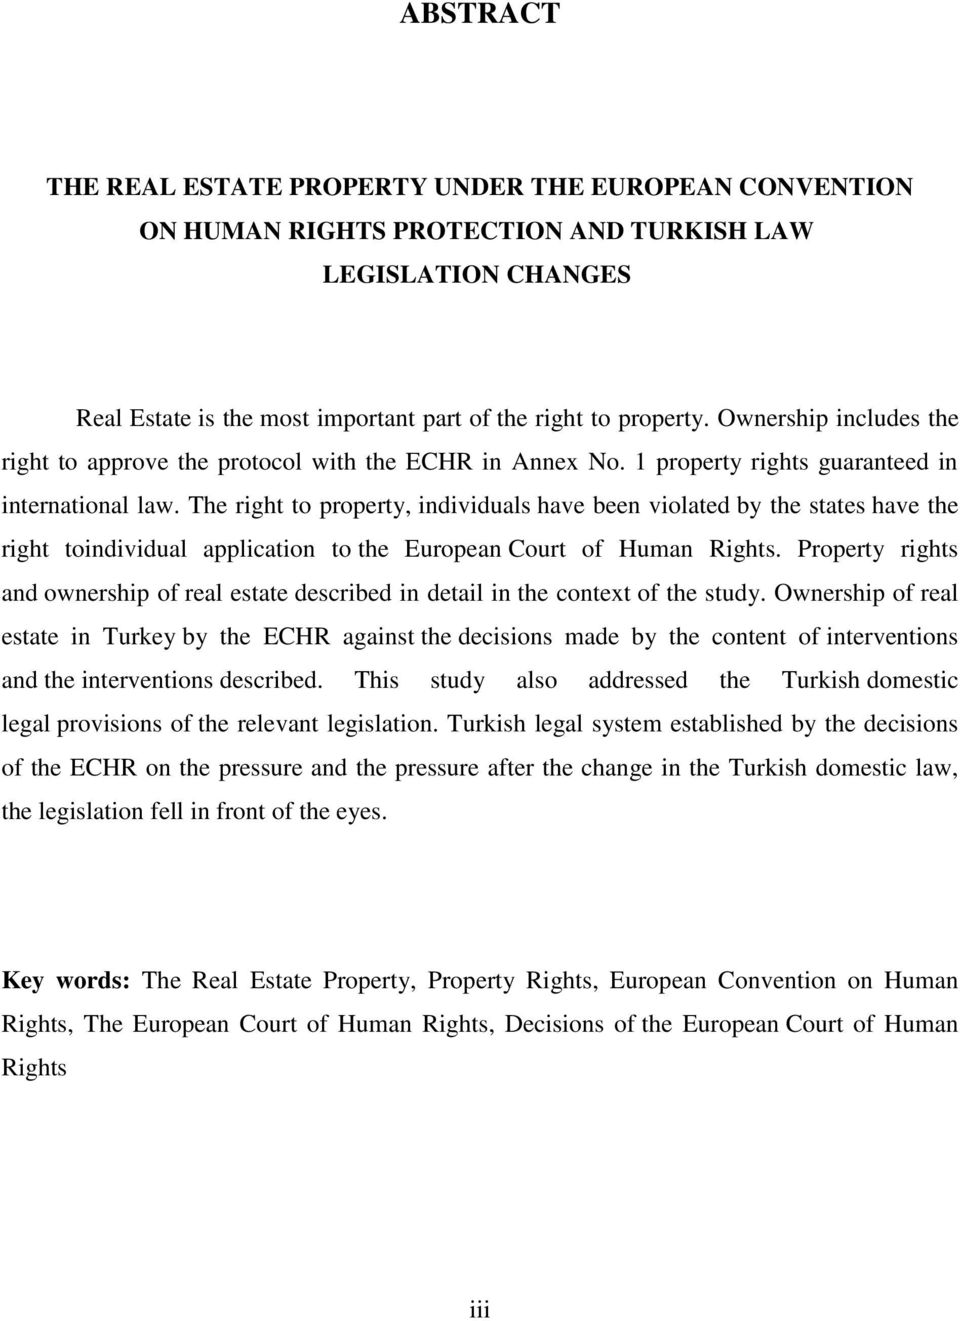 The right to property, individuals have been violated by the states have the right toindividual application to the European Court of Human Rights.